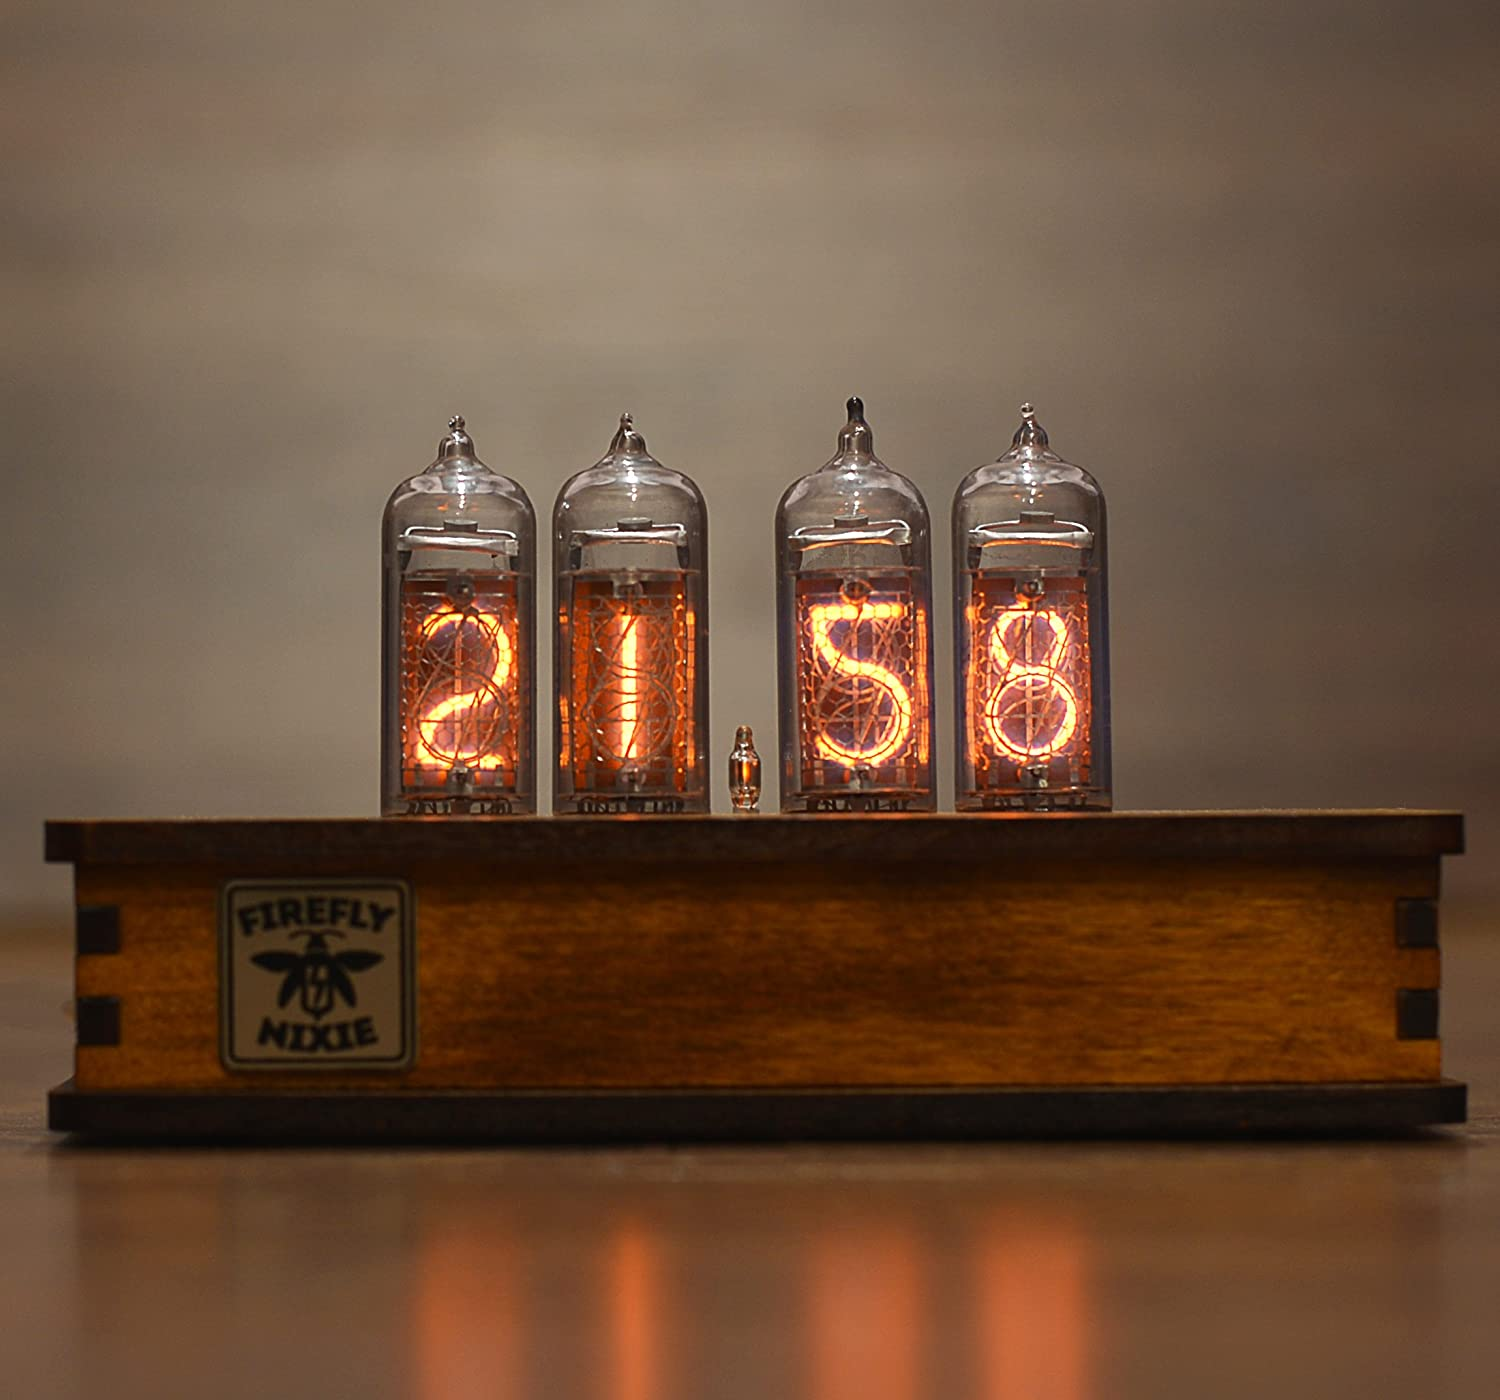 nixie tube clock 4x in 14 nixie tubes vintage retro desk clock fully assembled and tested wooden alder case fireflyNixie Clock #2